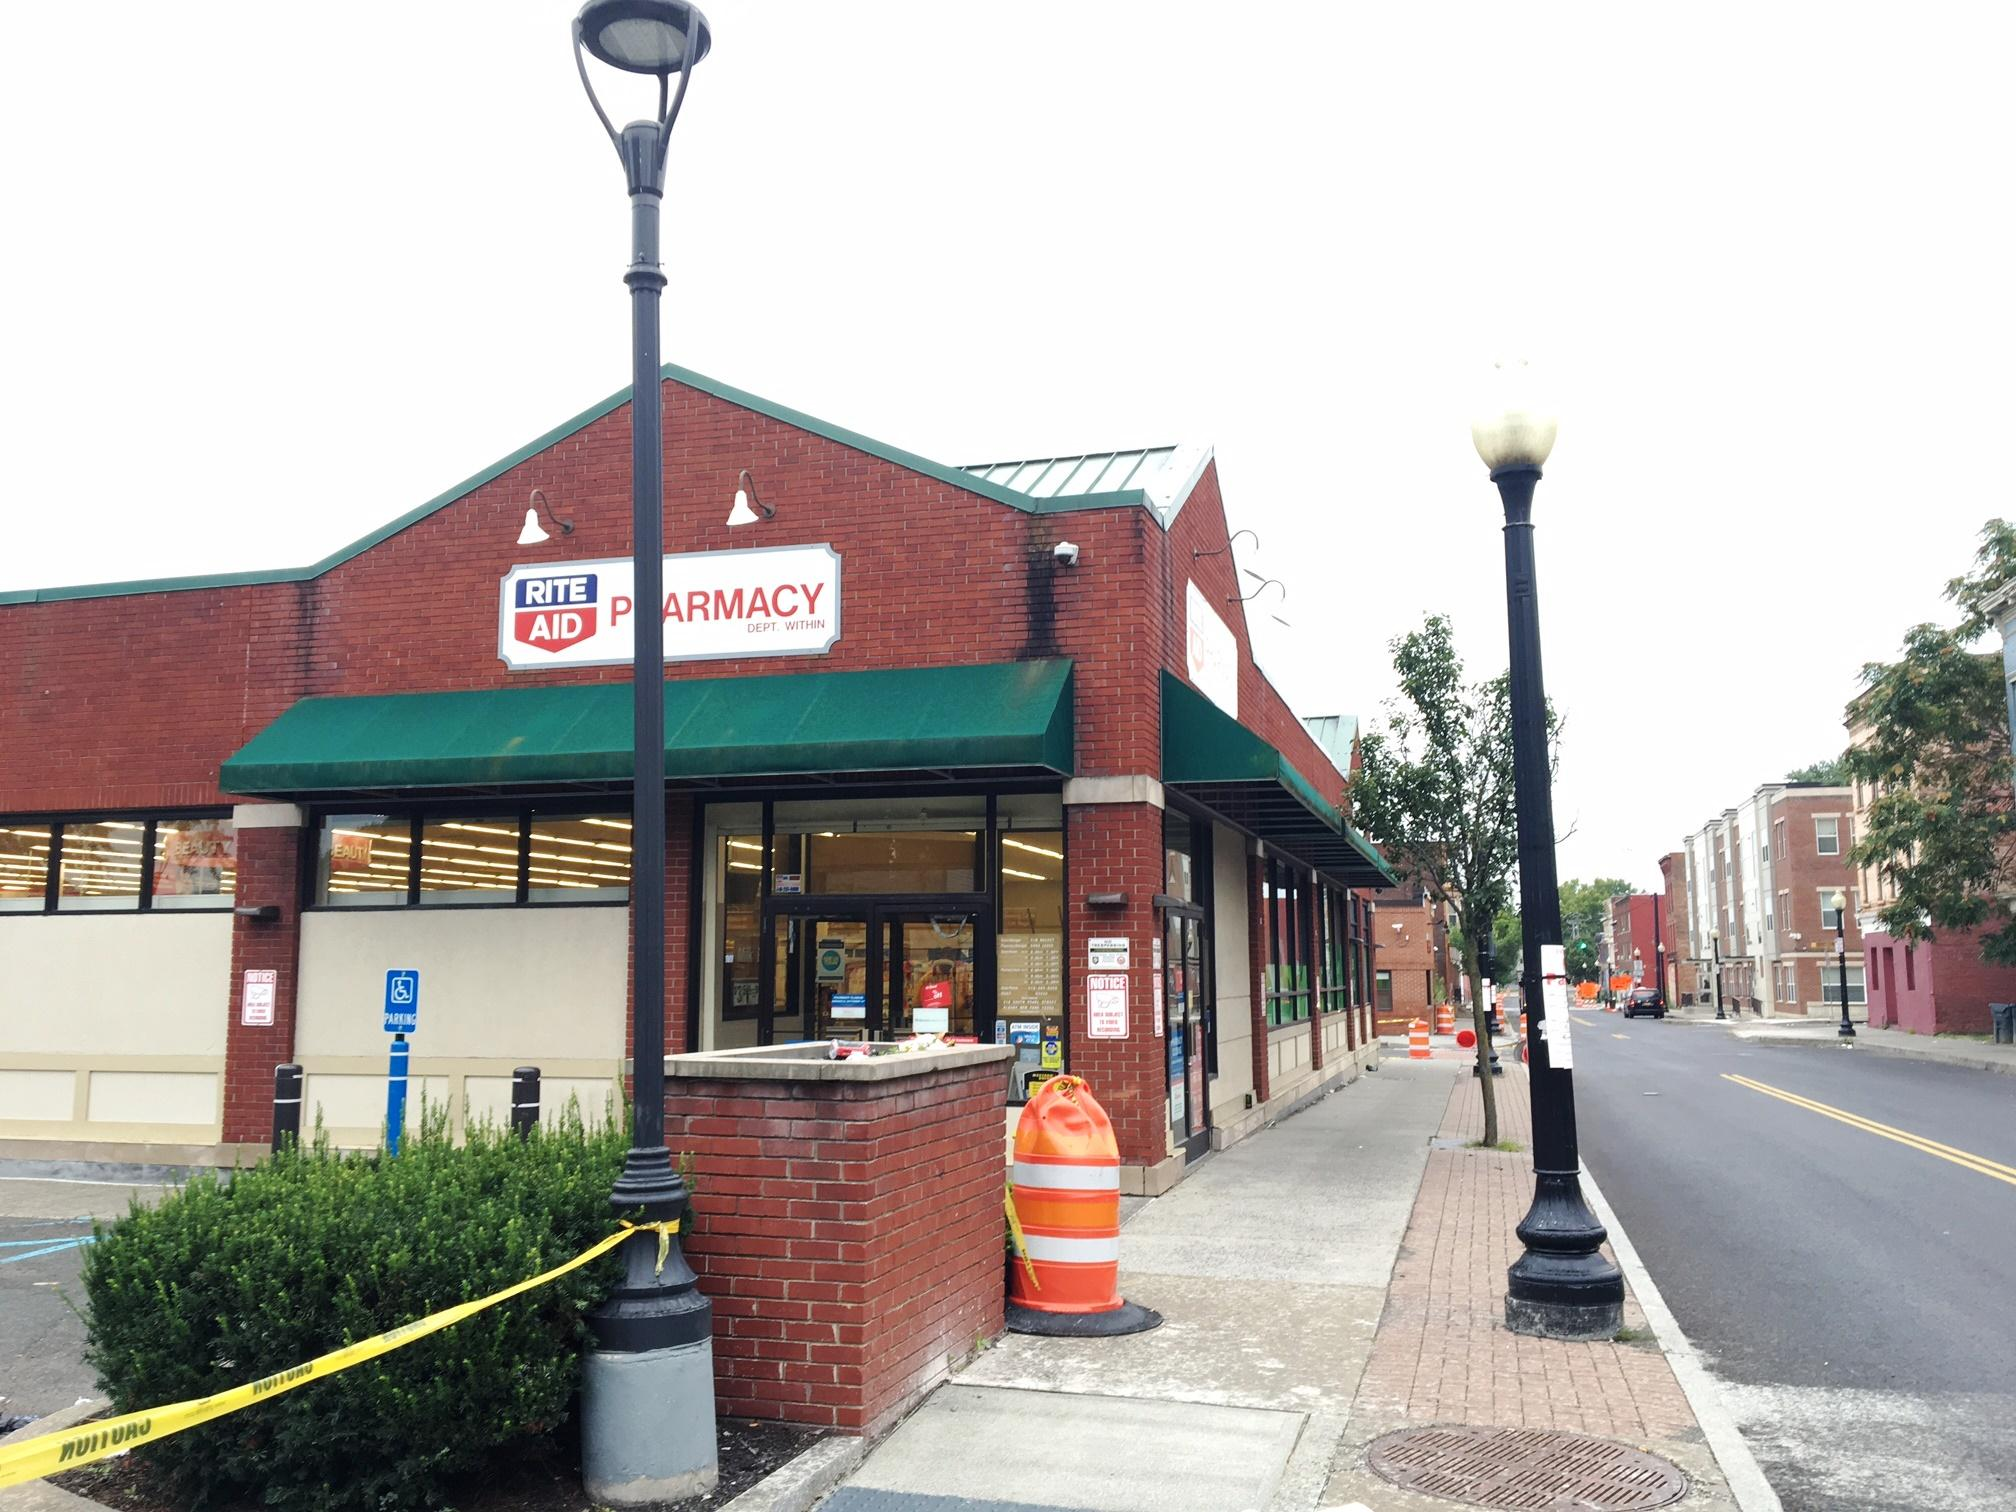 Push To Keep Rite Aid In Albany's South End Continues | WAMC Rite Aid Home Design Chairs on sears home design, home depot home design, ikea home design, walmart home design, rite aid home depot, tj maxx home design, rite aid home delivery, rite aid building design, jcpenney home design,